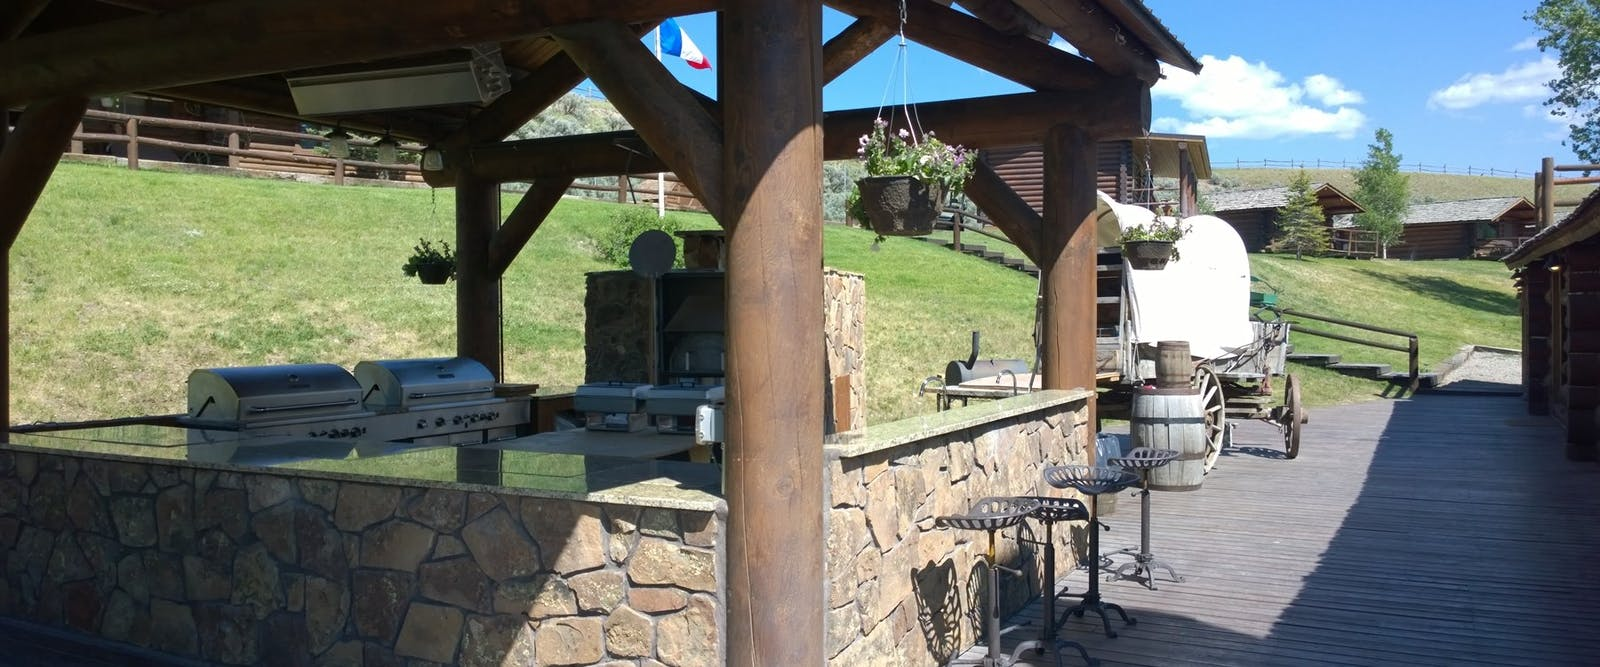 BBQ/Grill Area At Goosewing Ranch